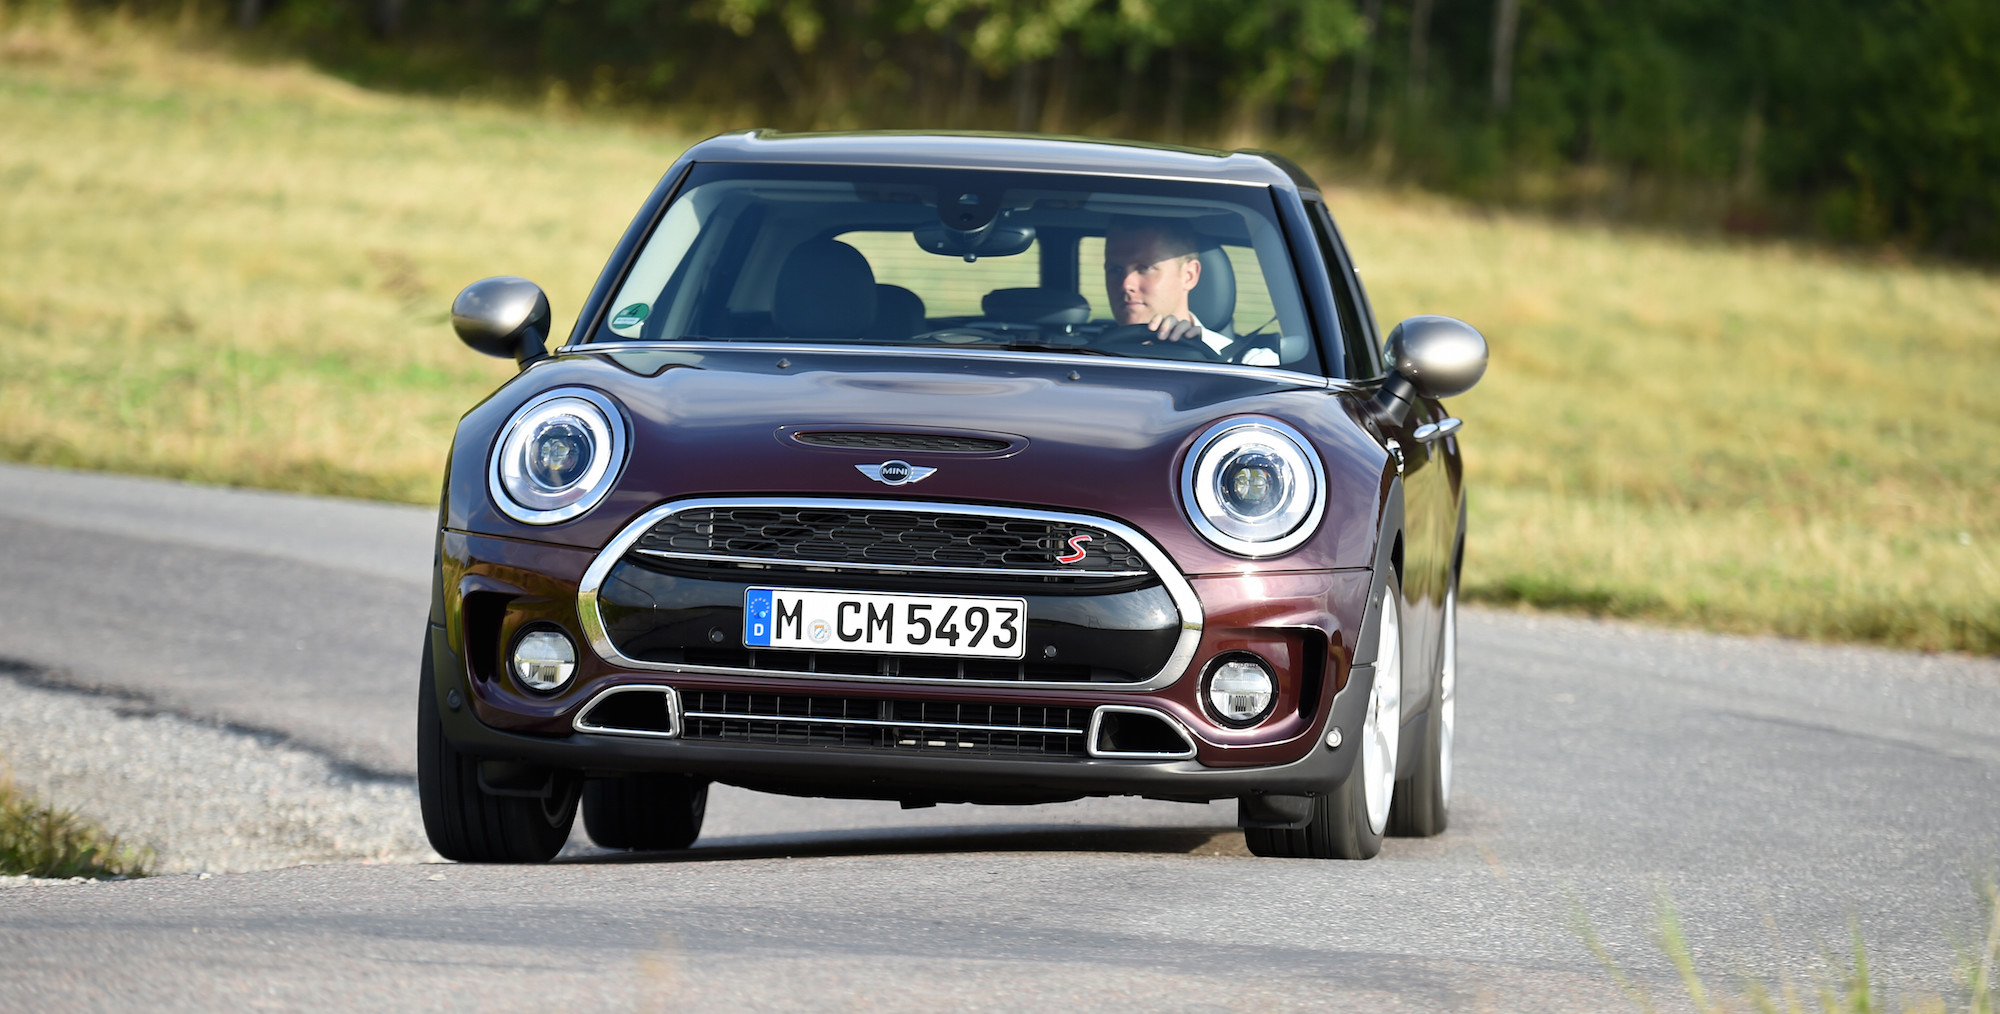 mini cooper s clubman 2016 6946 cars performance reviews and test drive. Black Bedroom Furniture Sets. Home Design Ideas